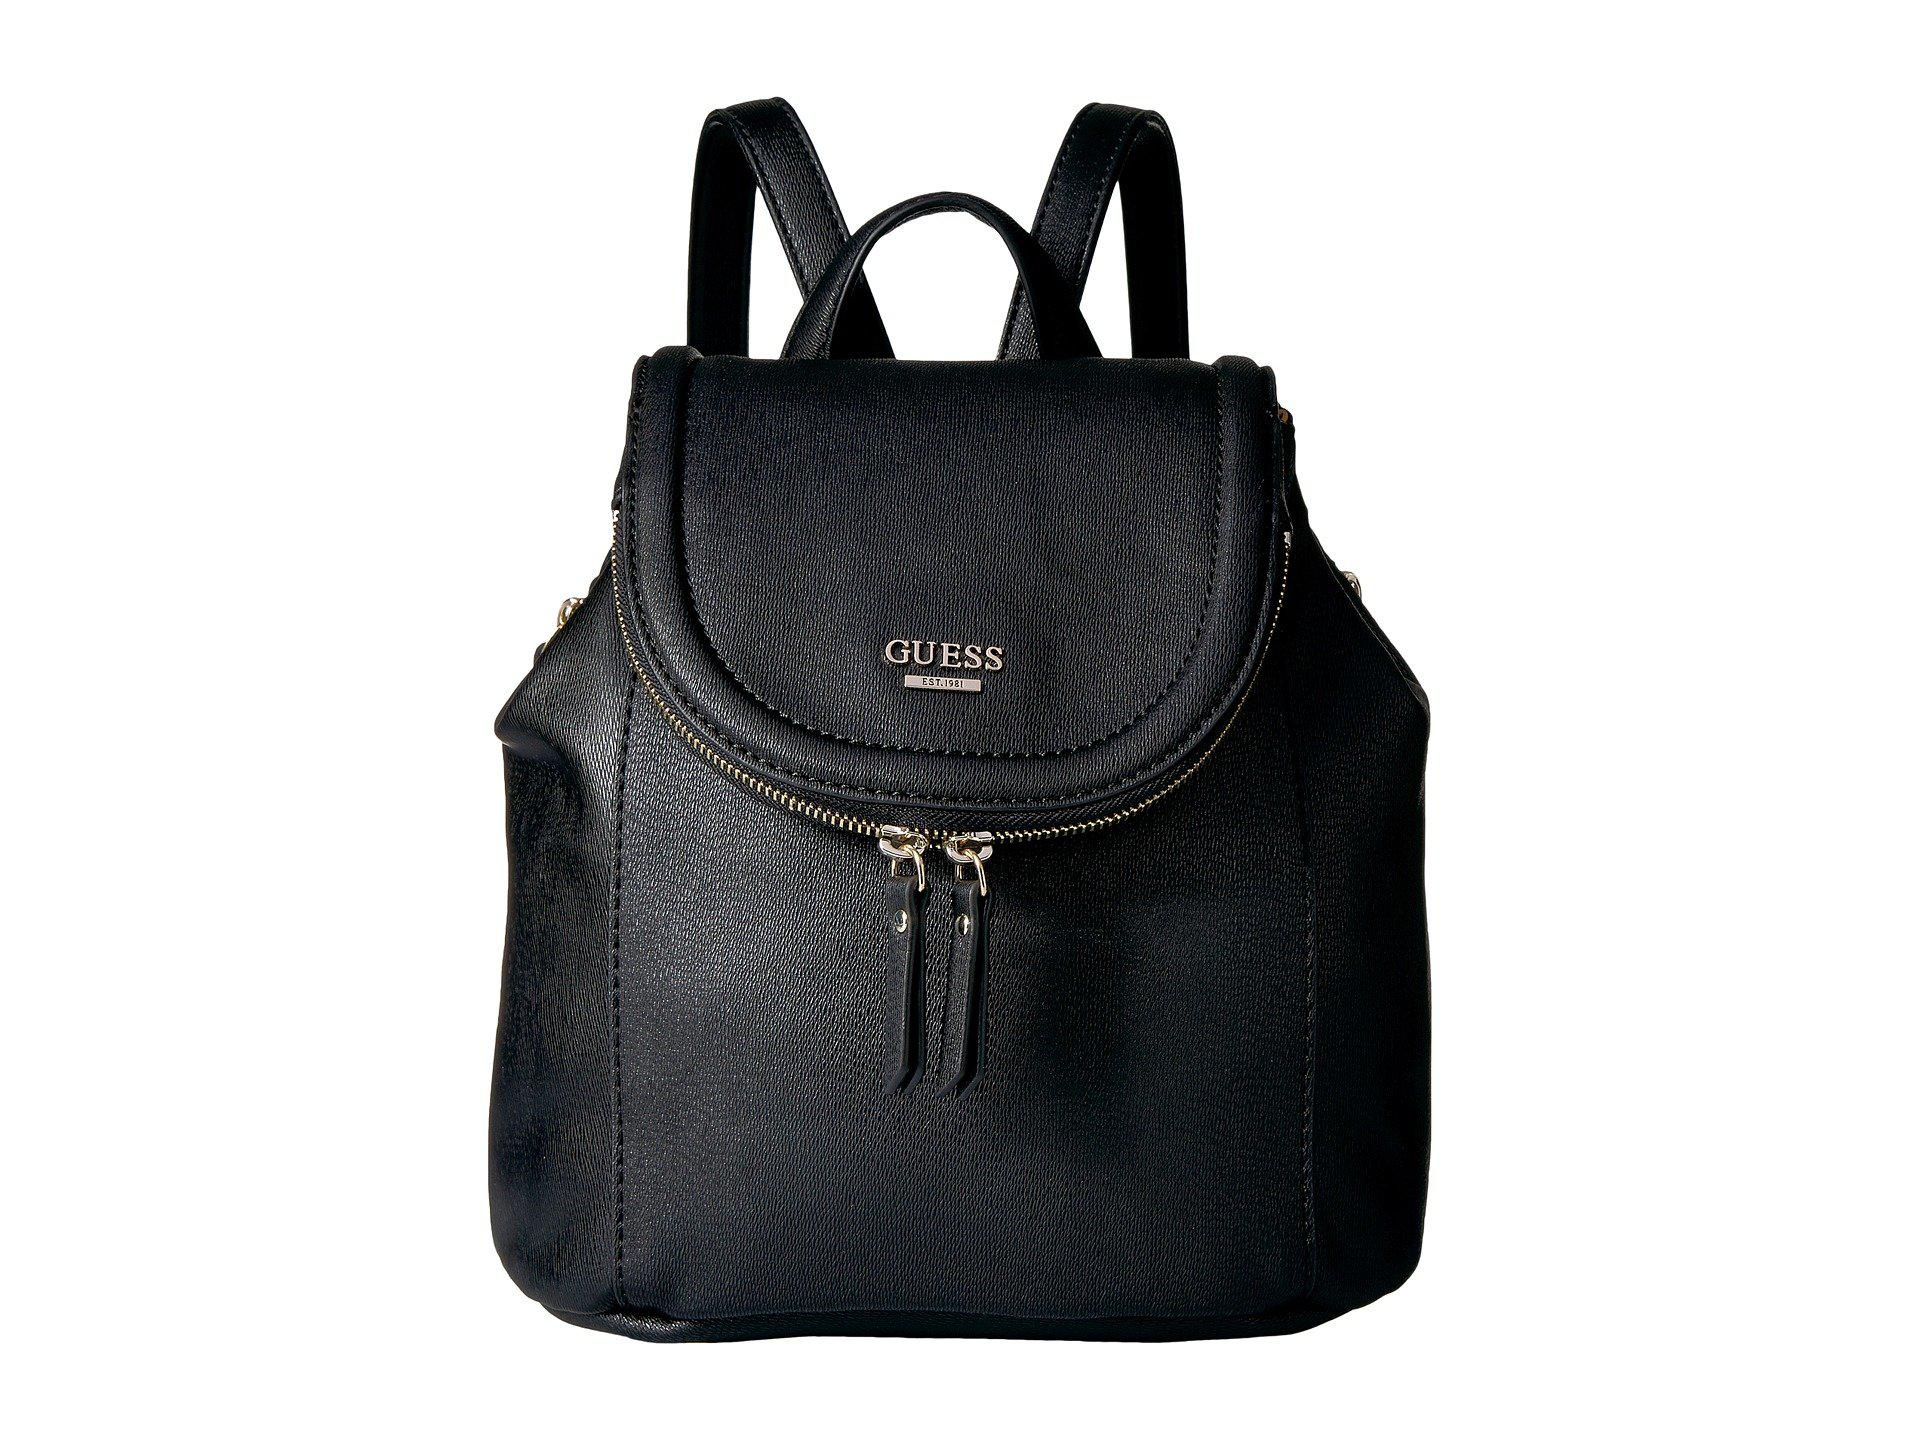 bfbd6ef2d1 Lyst - Guess Terra Small Backpack in Black